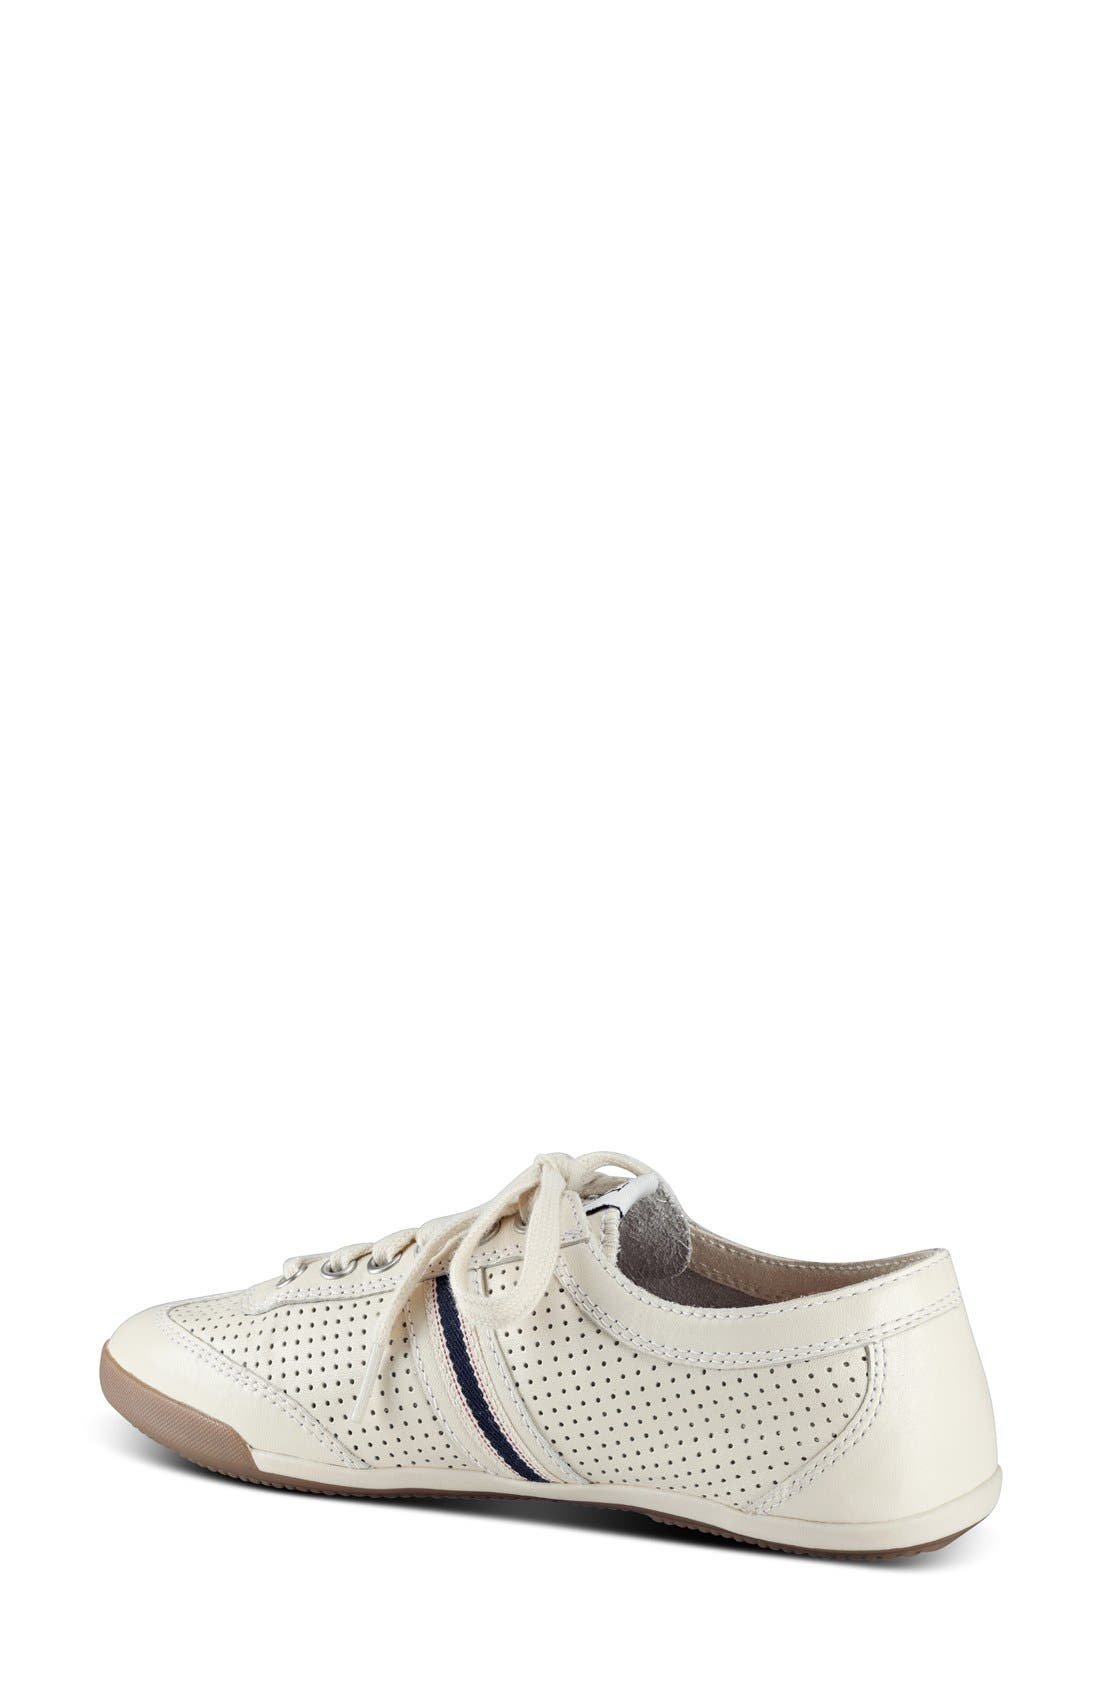 Alternate Image 2  - ED Ellen DeGeneres 'Escondido' Sneaker (Women)